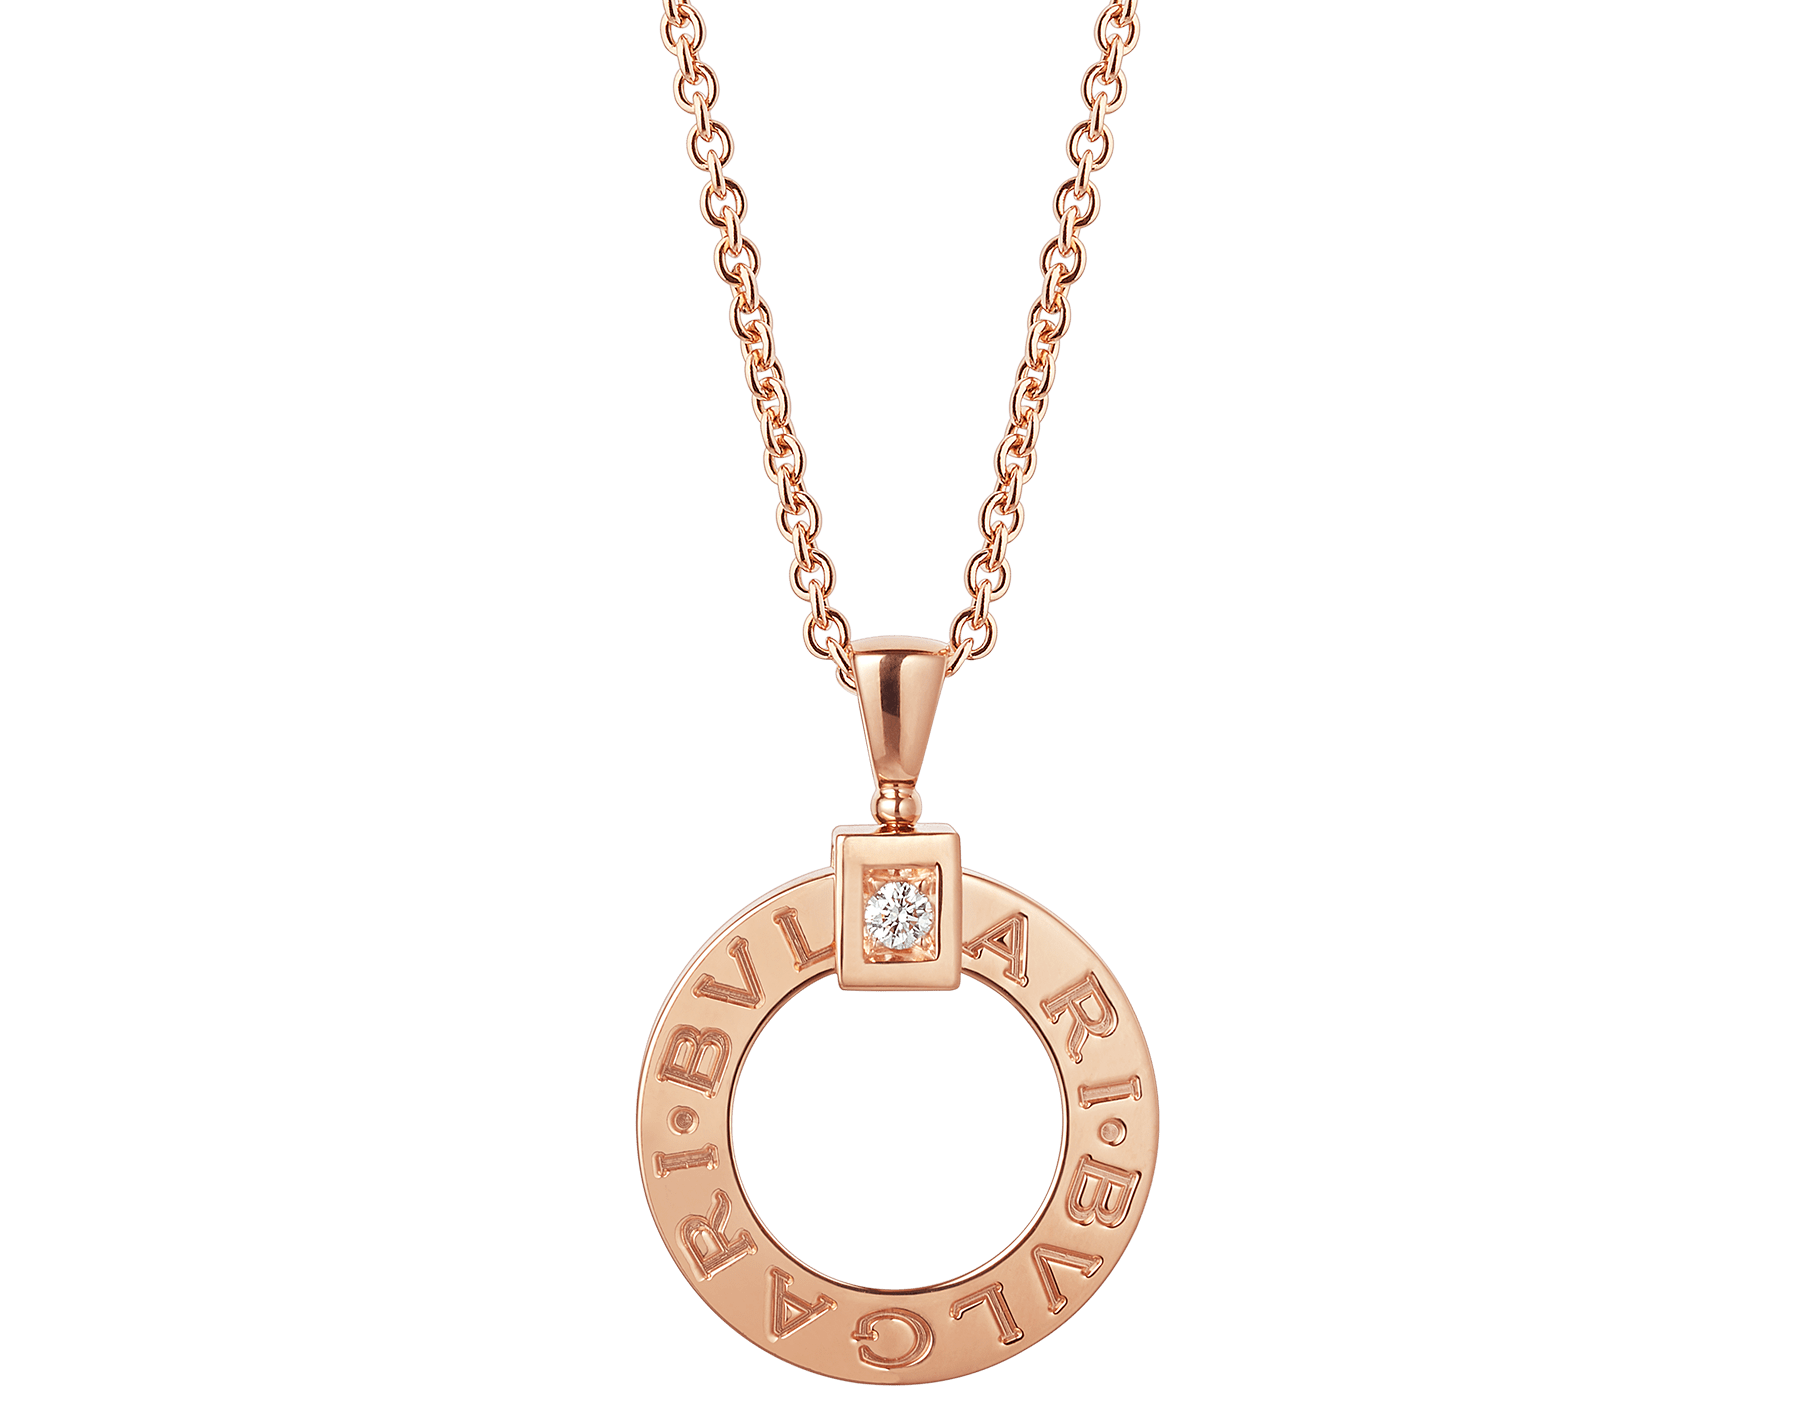 BVLGARI BVLGARI necklace with 18 kt rose gold chain and 18 kt rose gold pendant set with a diamond 344492 image 1